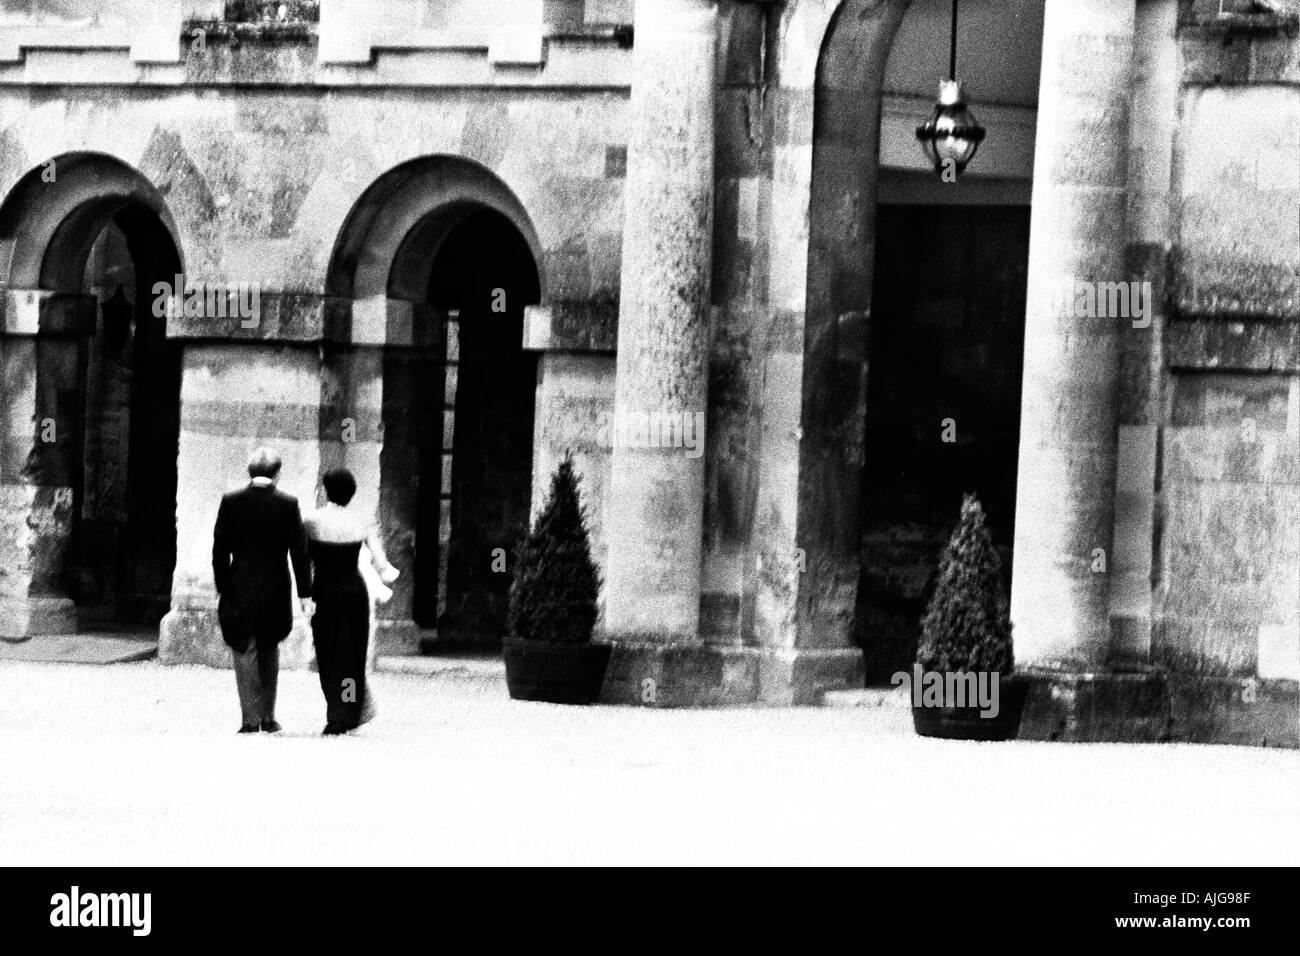 Butlers come to pick up luggage at hotel Clivedon - Stock Image